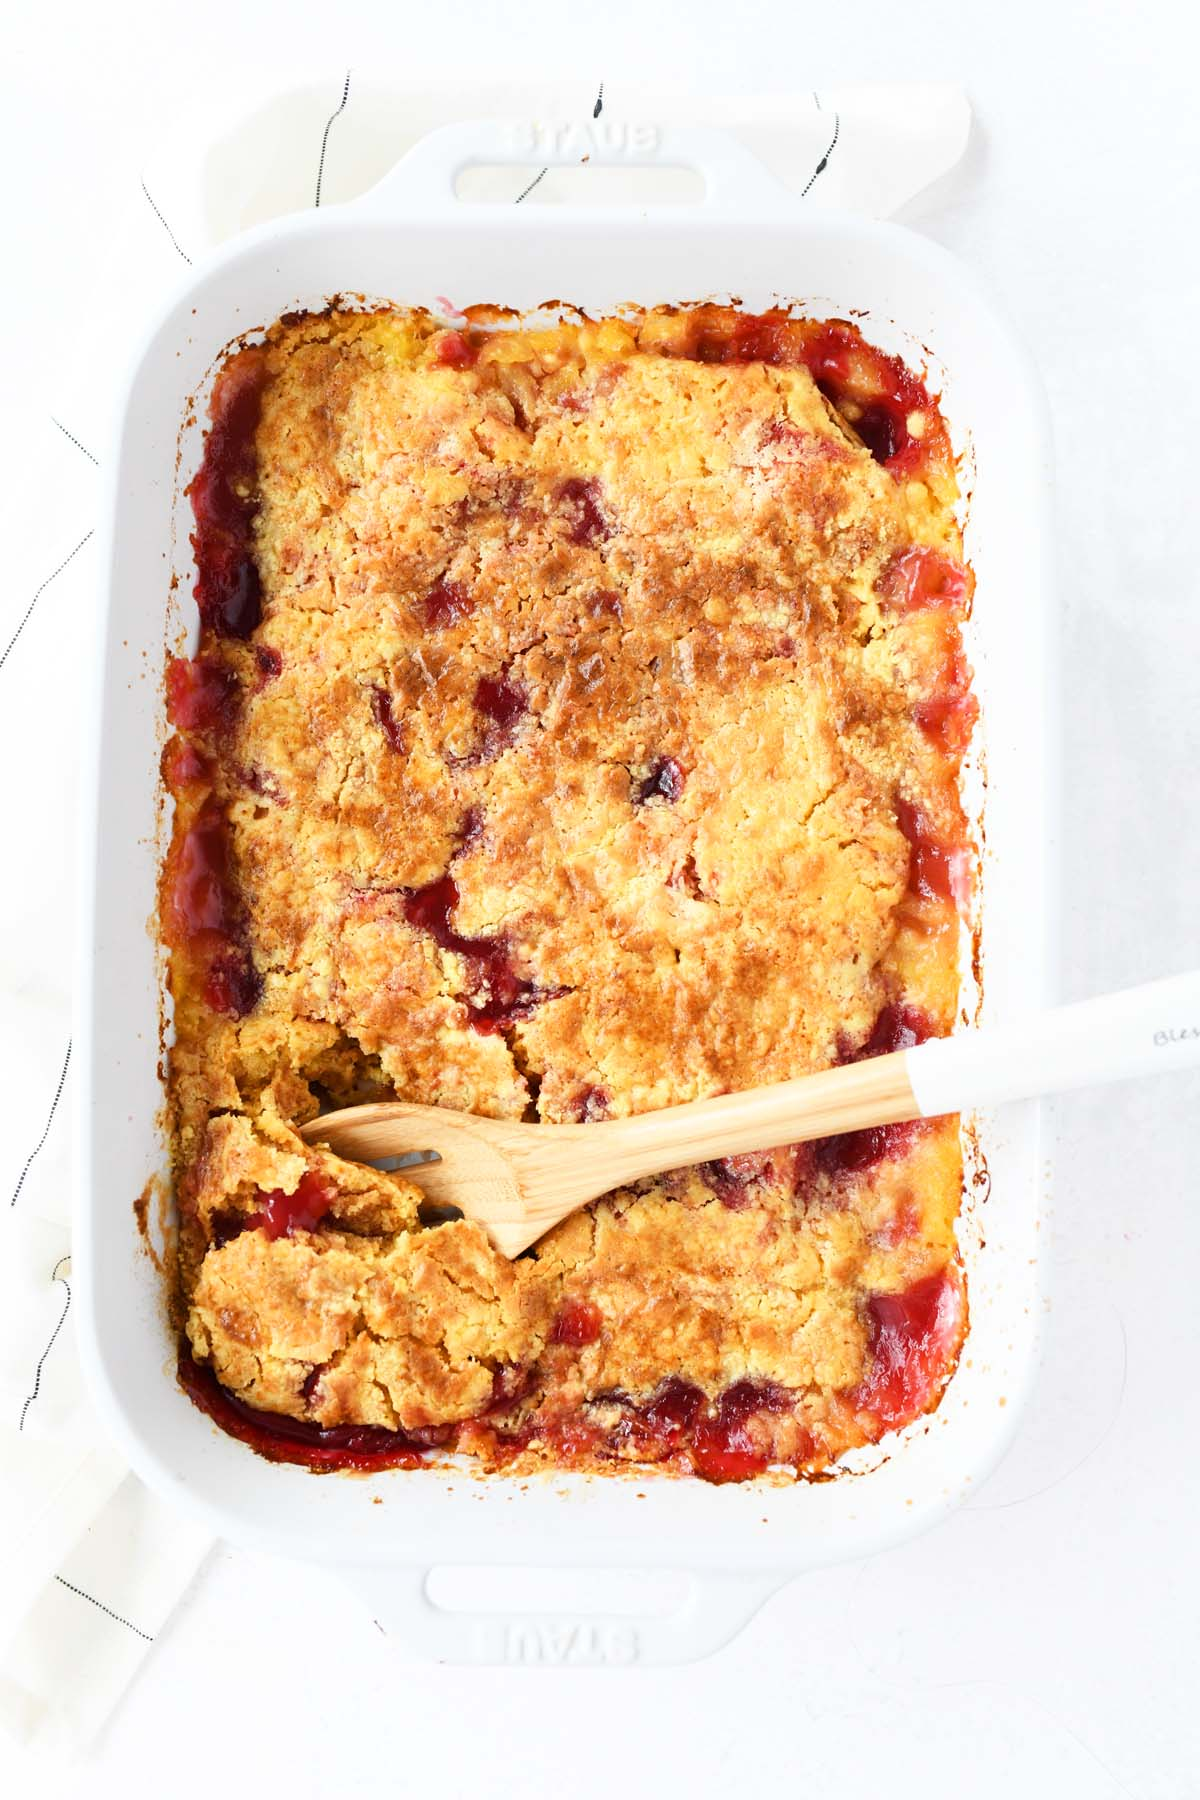 Cherry pineapple dump cake with a wooden spoon.